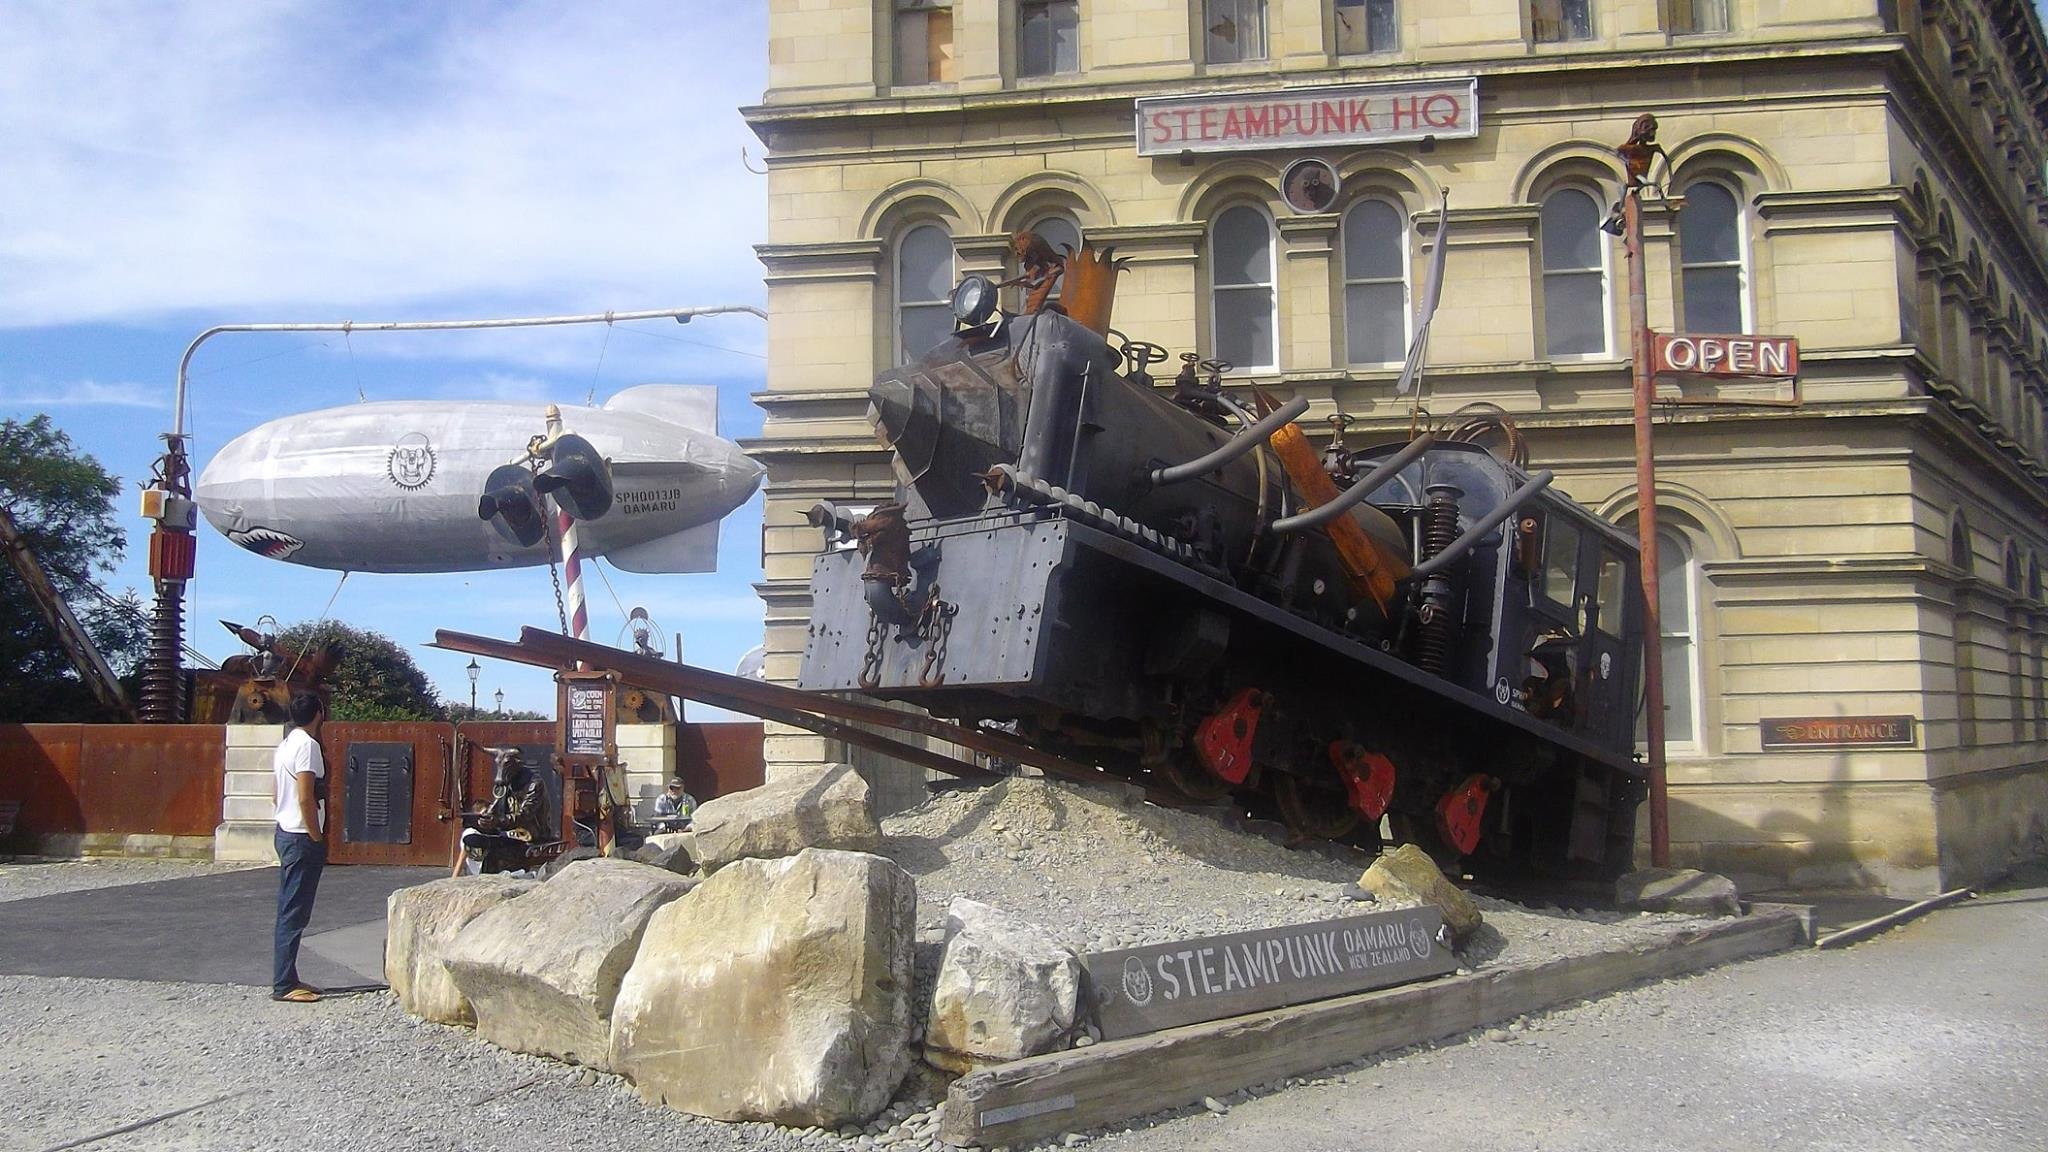 oamaru steampunk nz road-trip